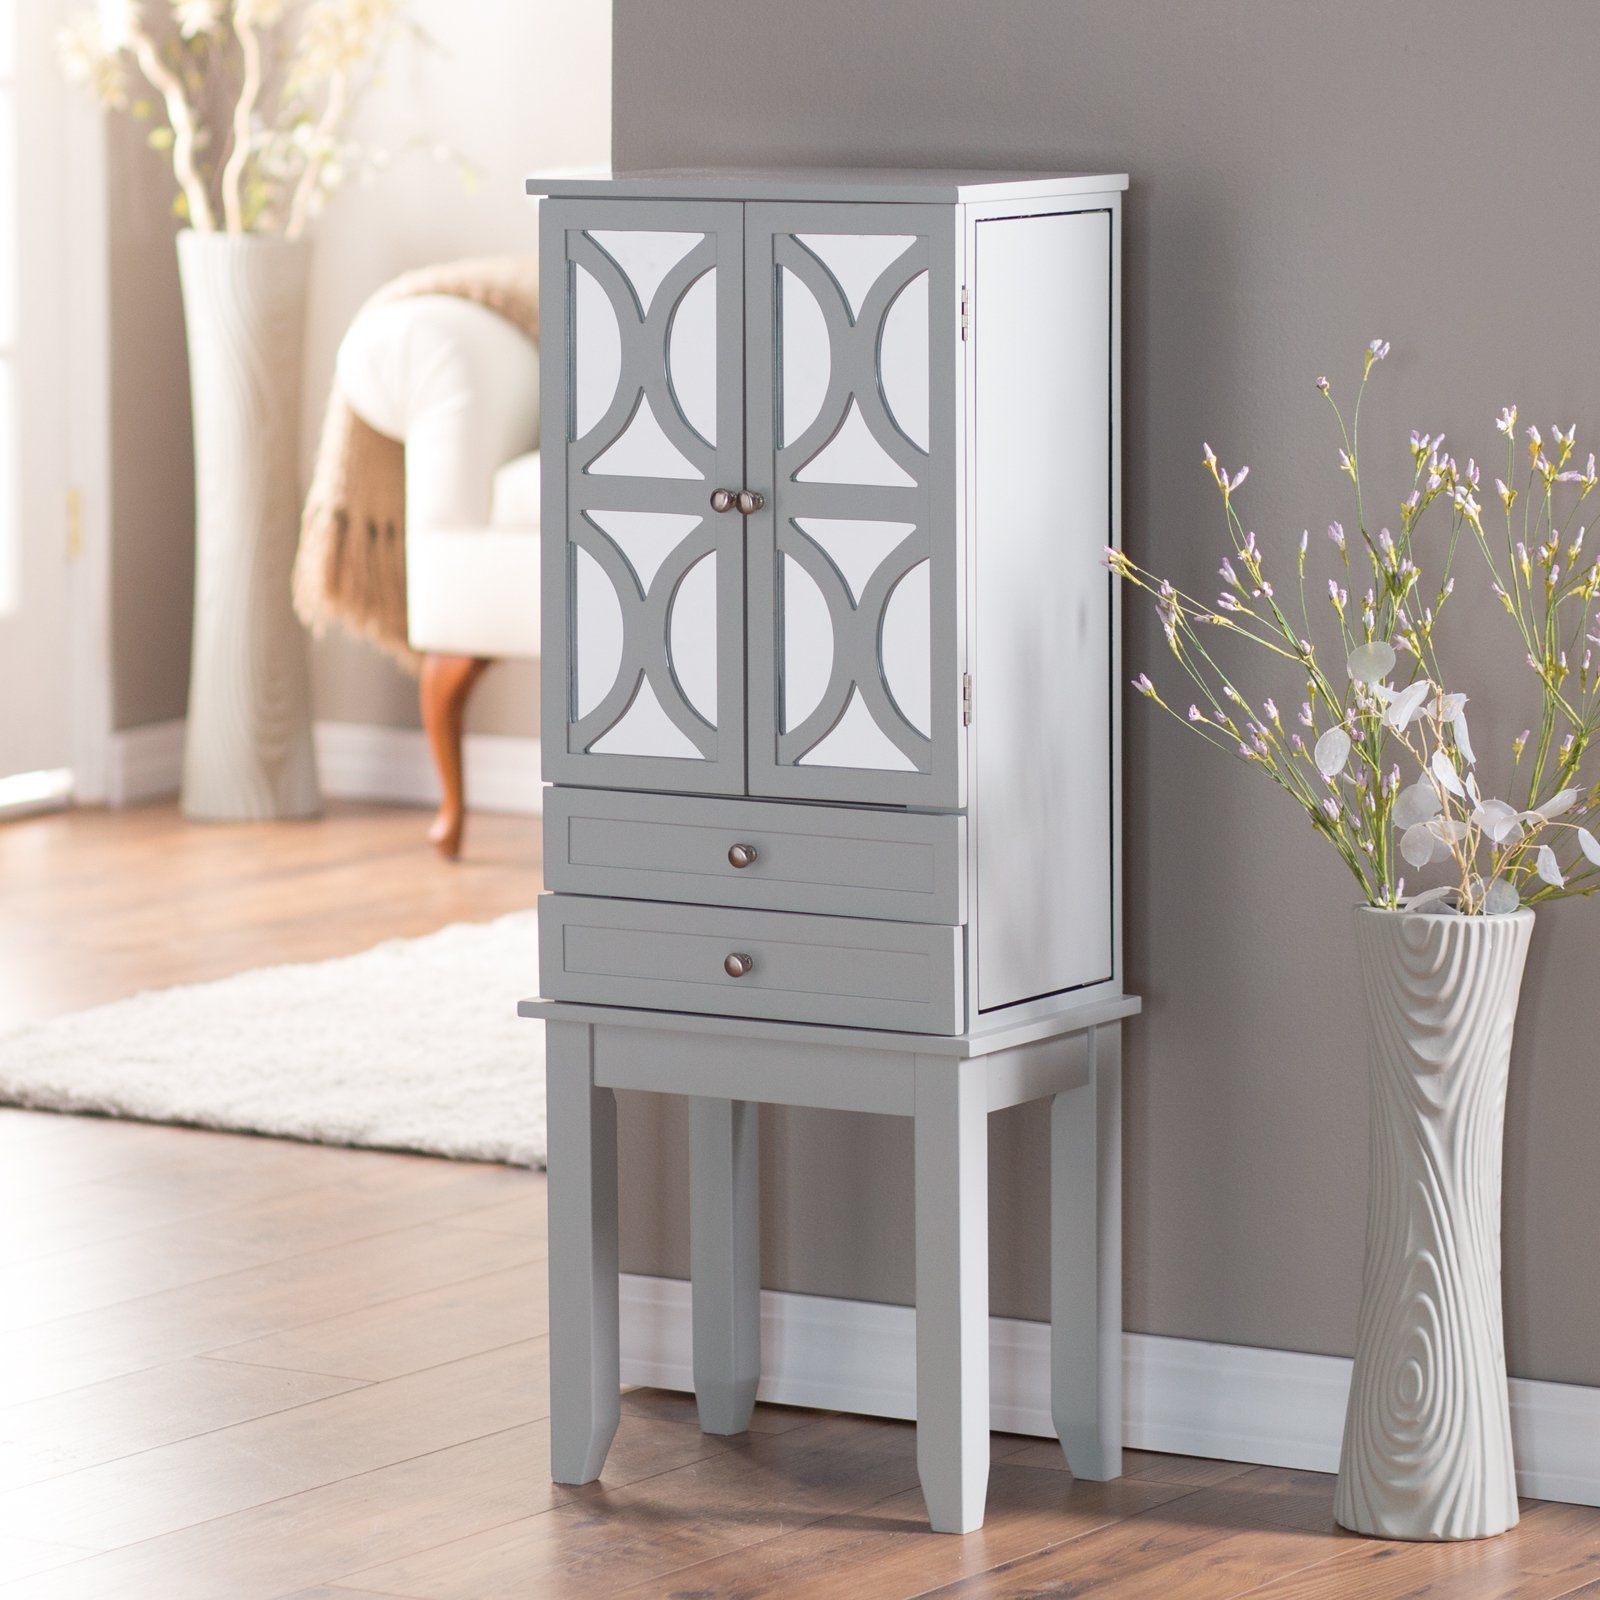 Belham Living Mirrored Lattice Front Jewelry Armoire   High Gloss Gray   Jewelry  Armoires At Hayneedle